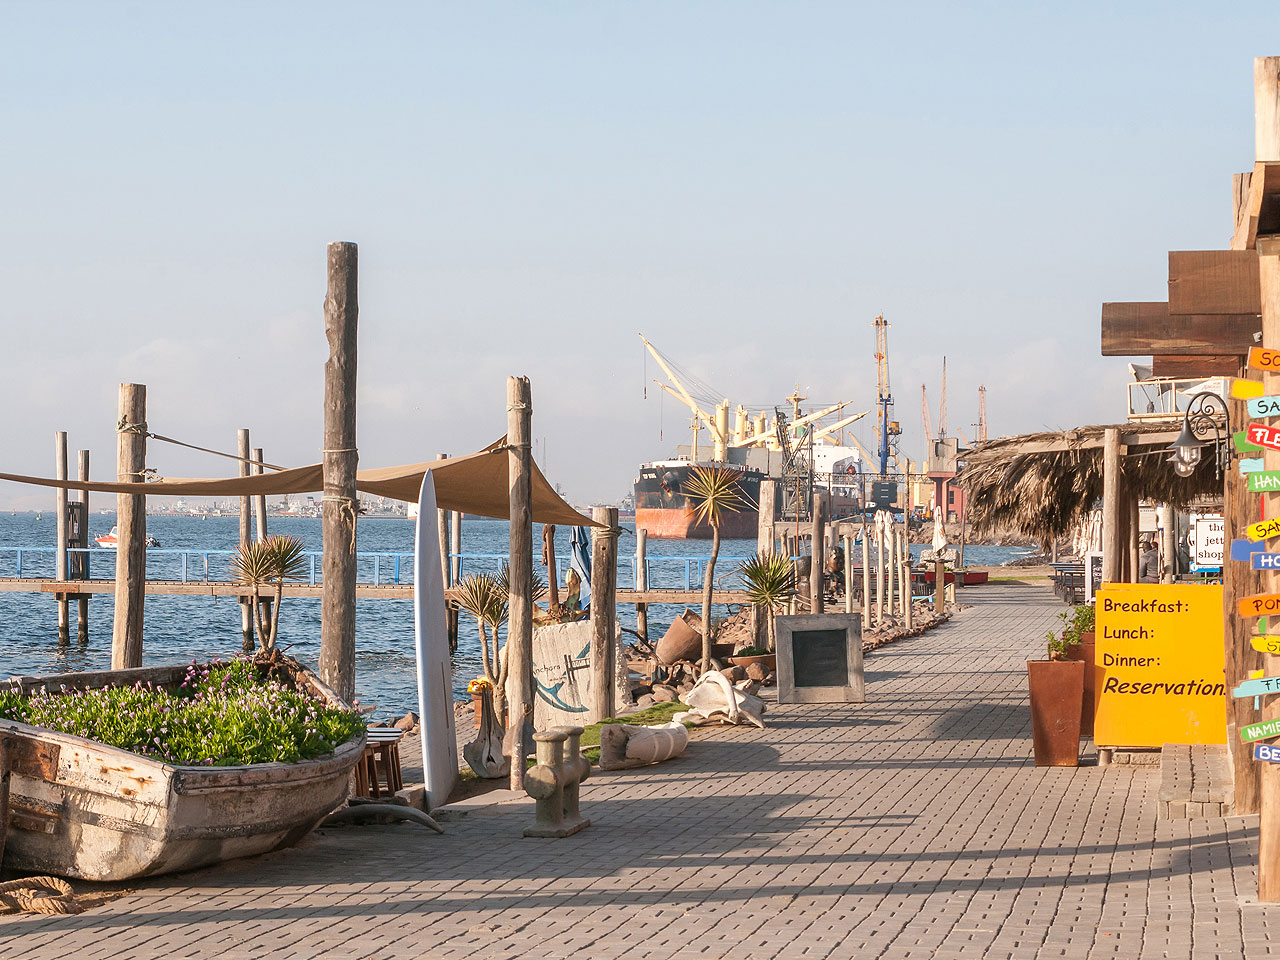 Walvis Bay Waterfront with shops and a large ship in harbour in the background.